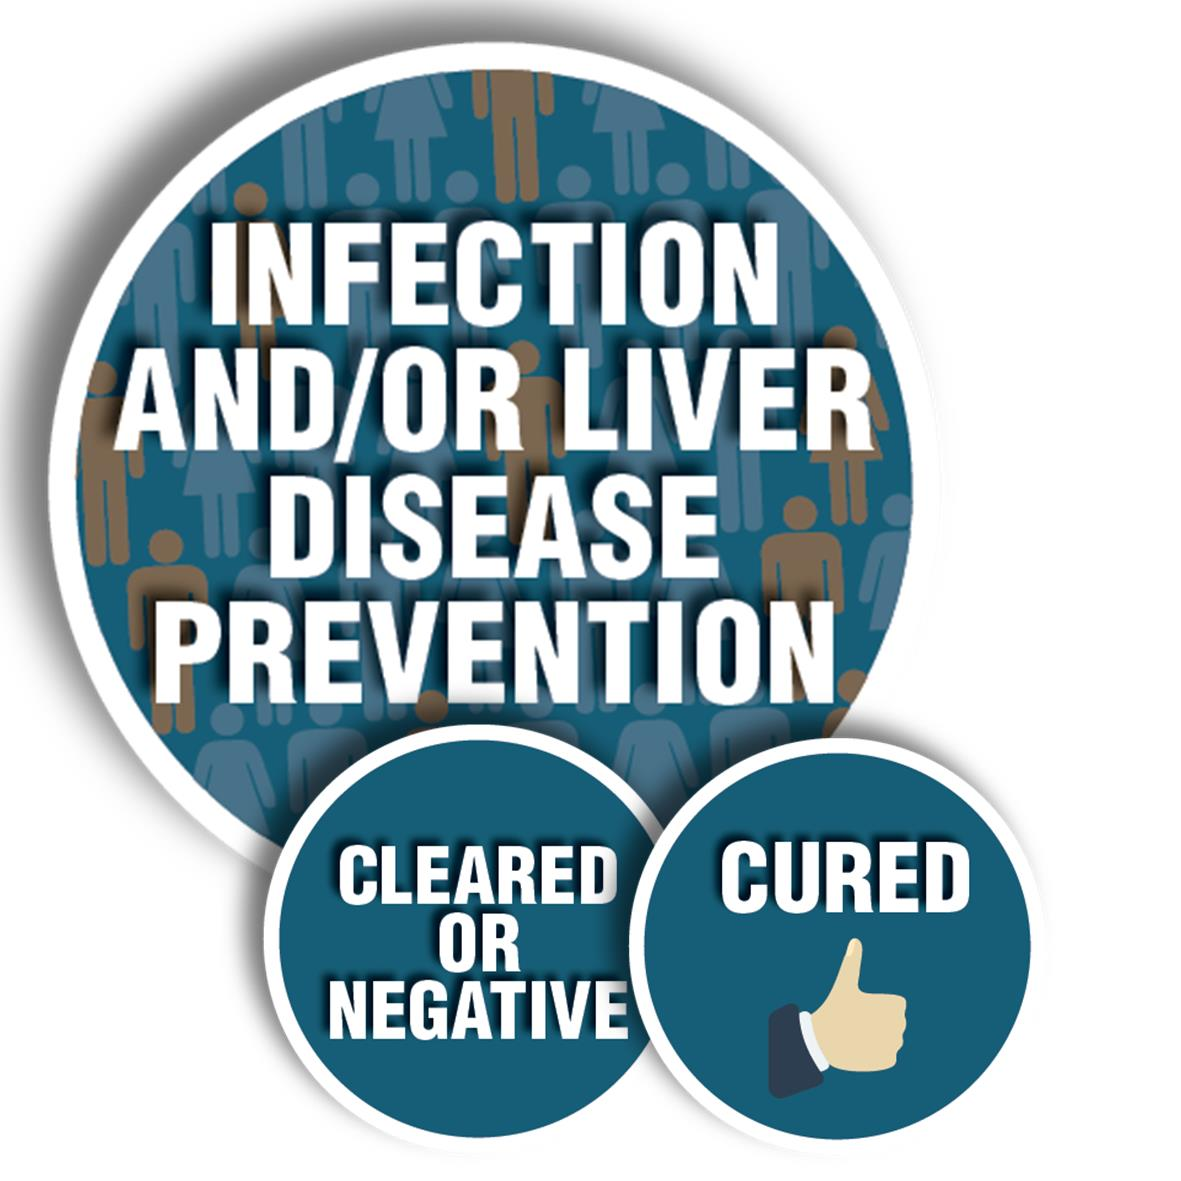 Prevention INFECTION cure cleared larger three circles - high quality